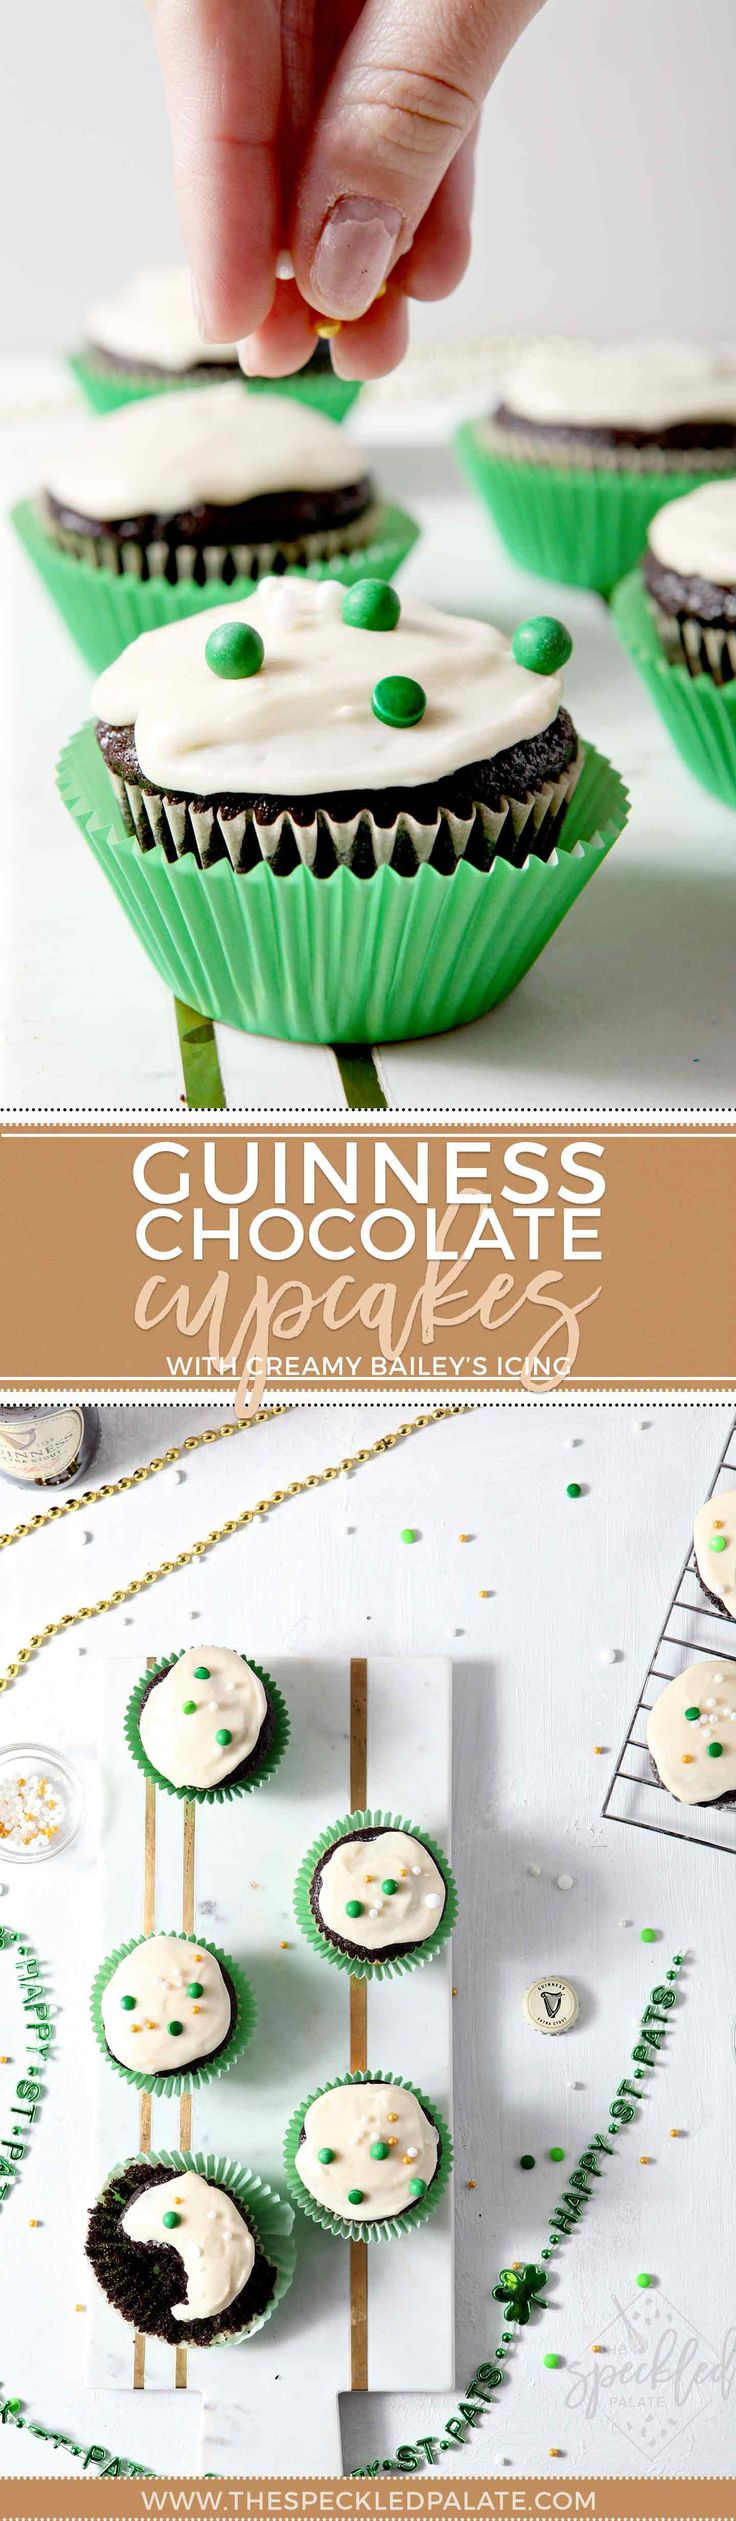 Chocolate Guinness Cupcakes with Creamy Bailey's Icing Pinterest collage, featuring two images of the cupcakes being decorated and displayed on a marble platter